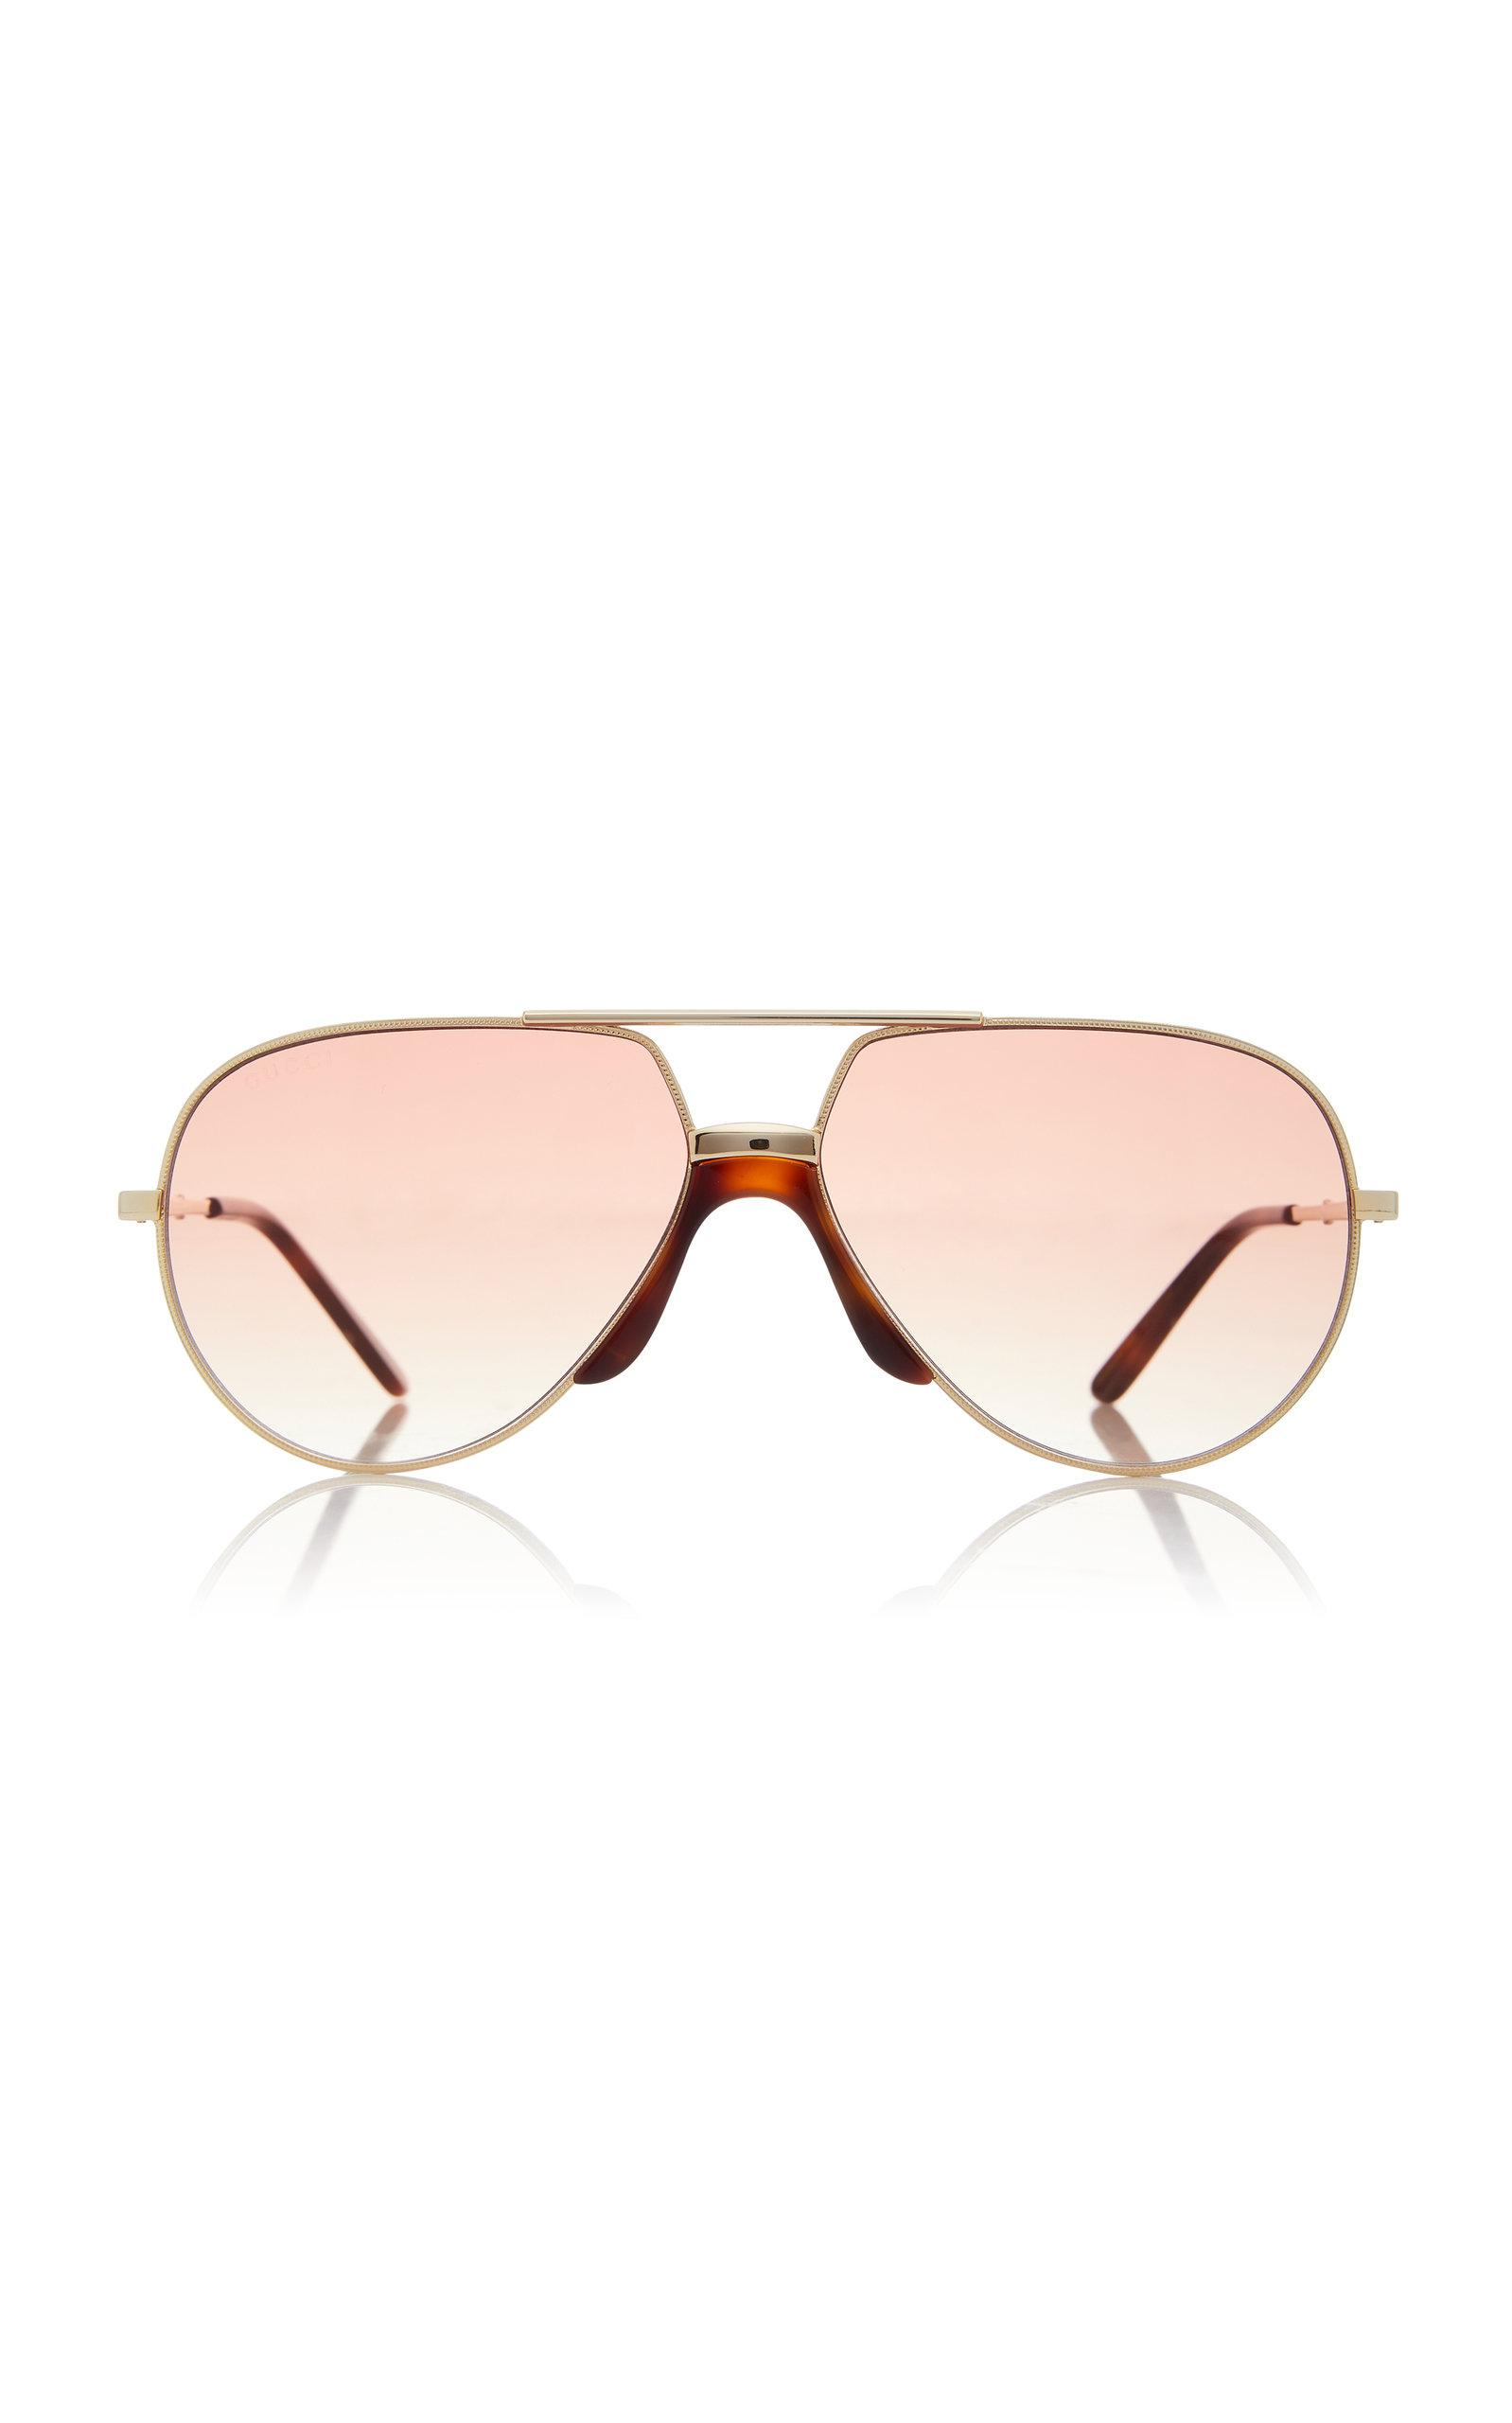 3f8add2f03f02 Lyst - Gucci Oversized Metal Aviator Sunglasses in Metallic for Men